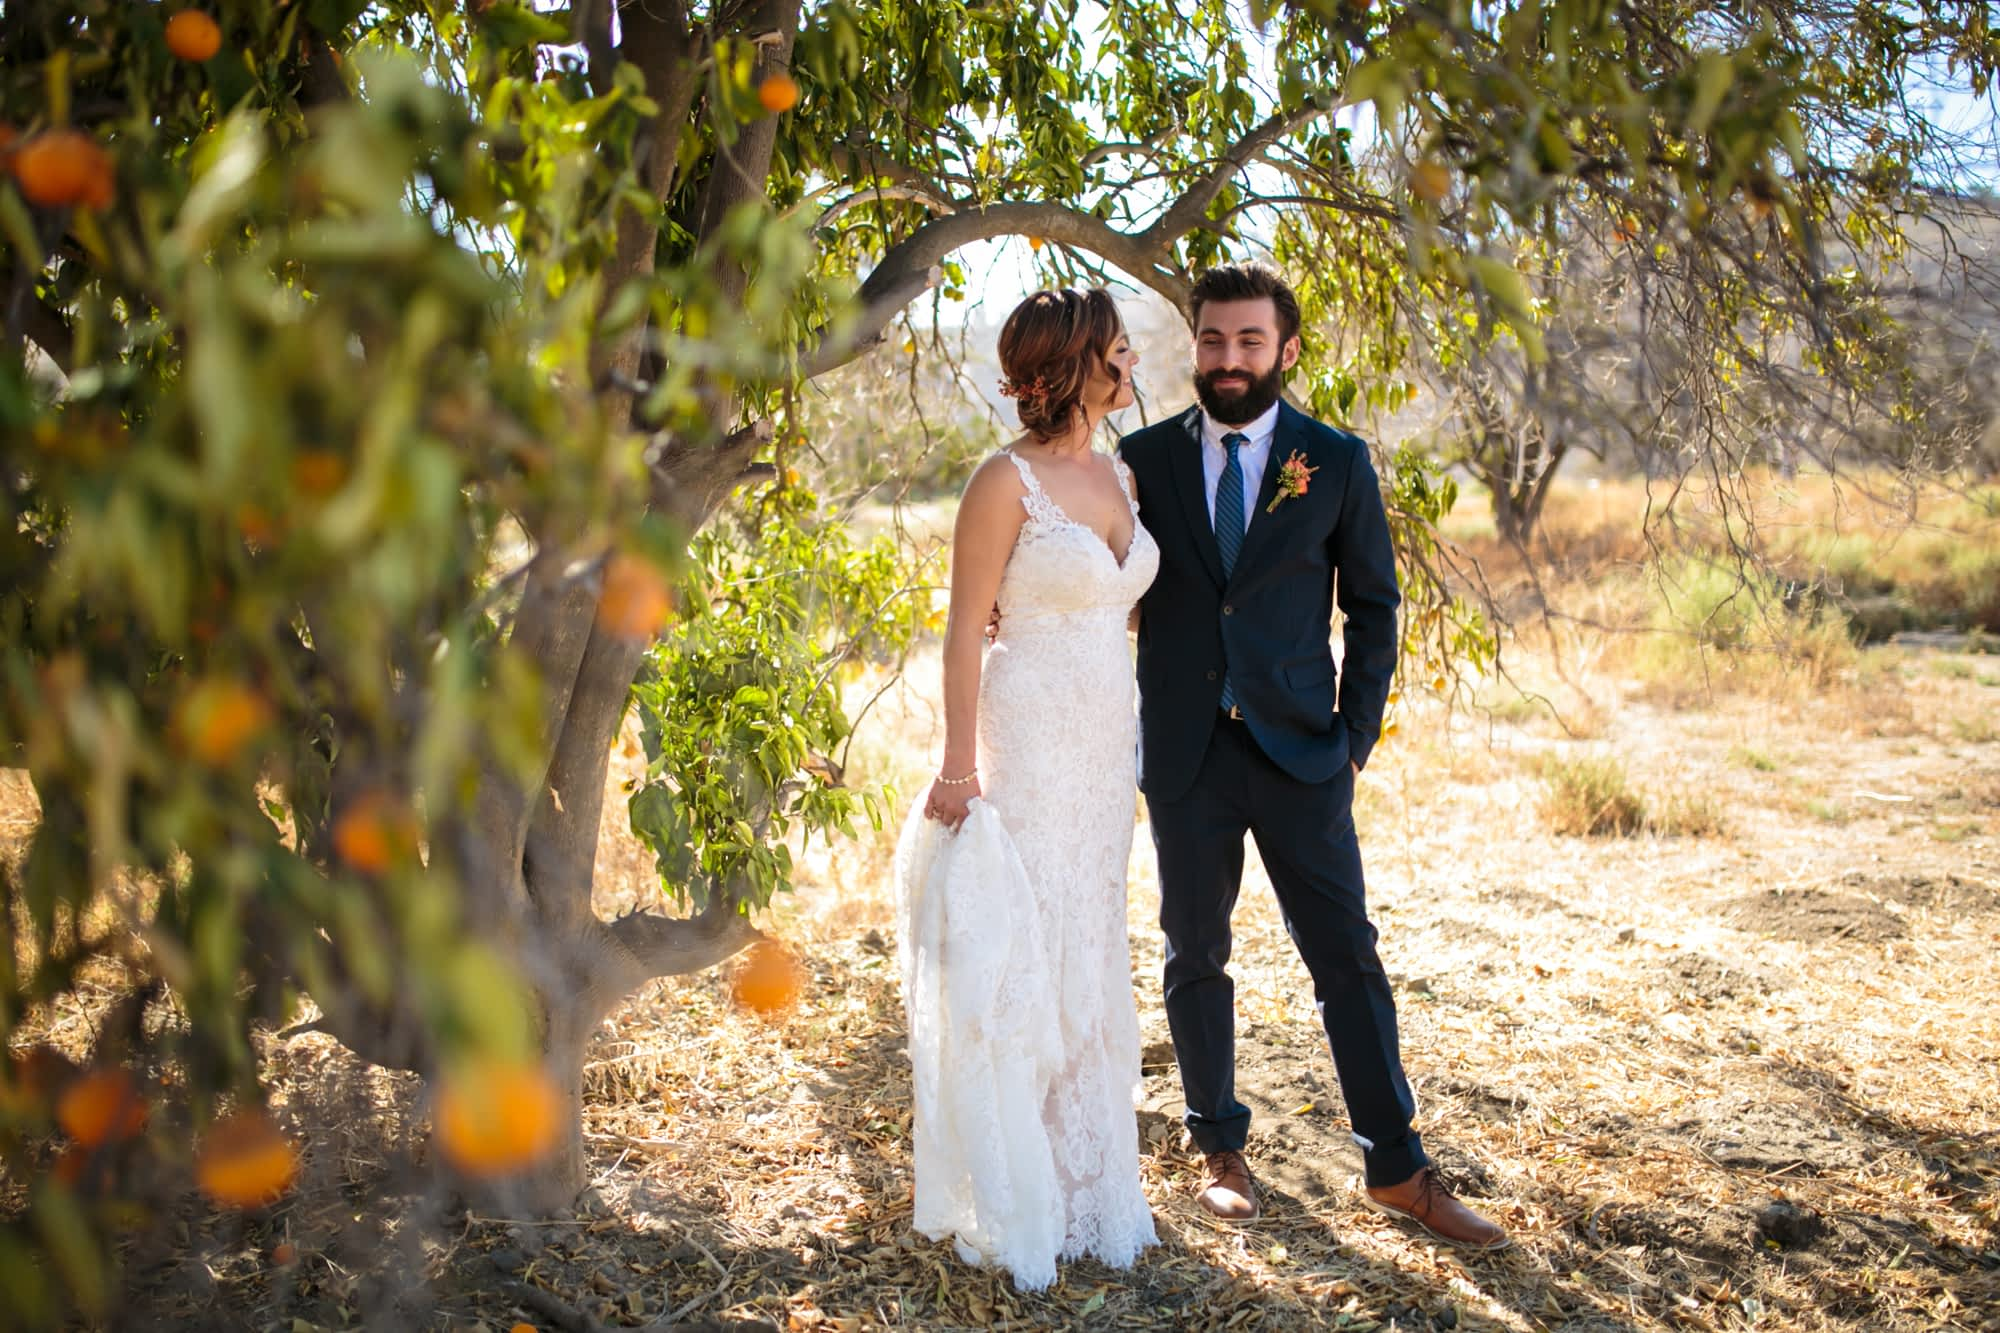 Couple stands under an orange tree.